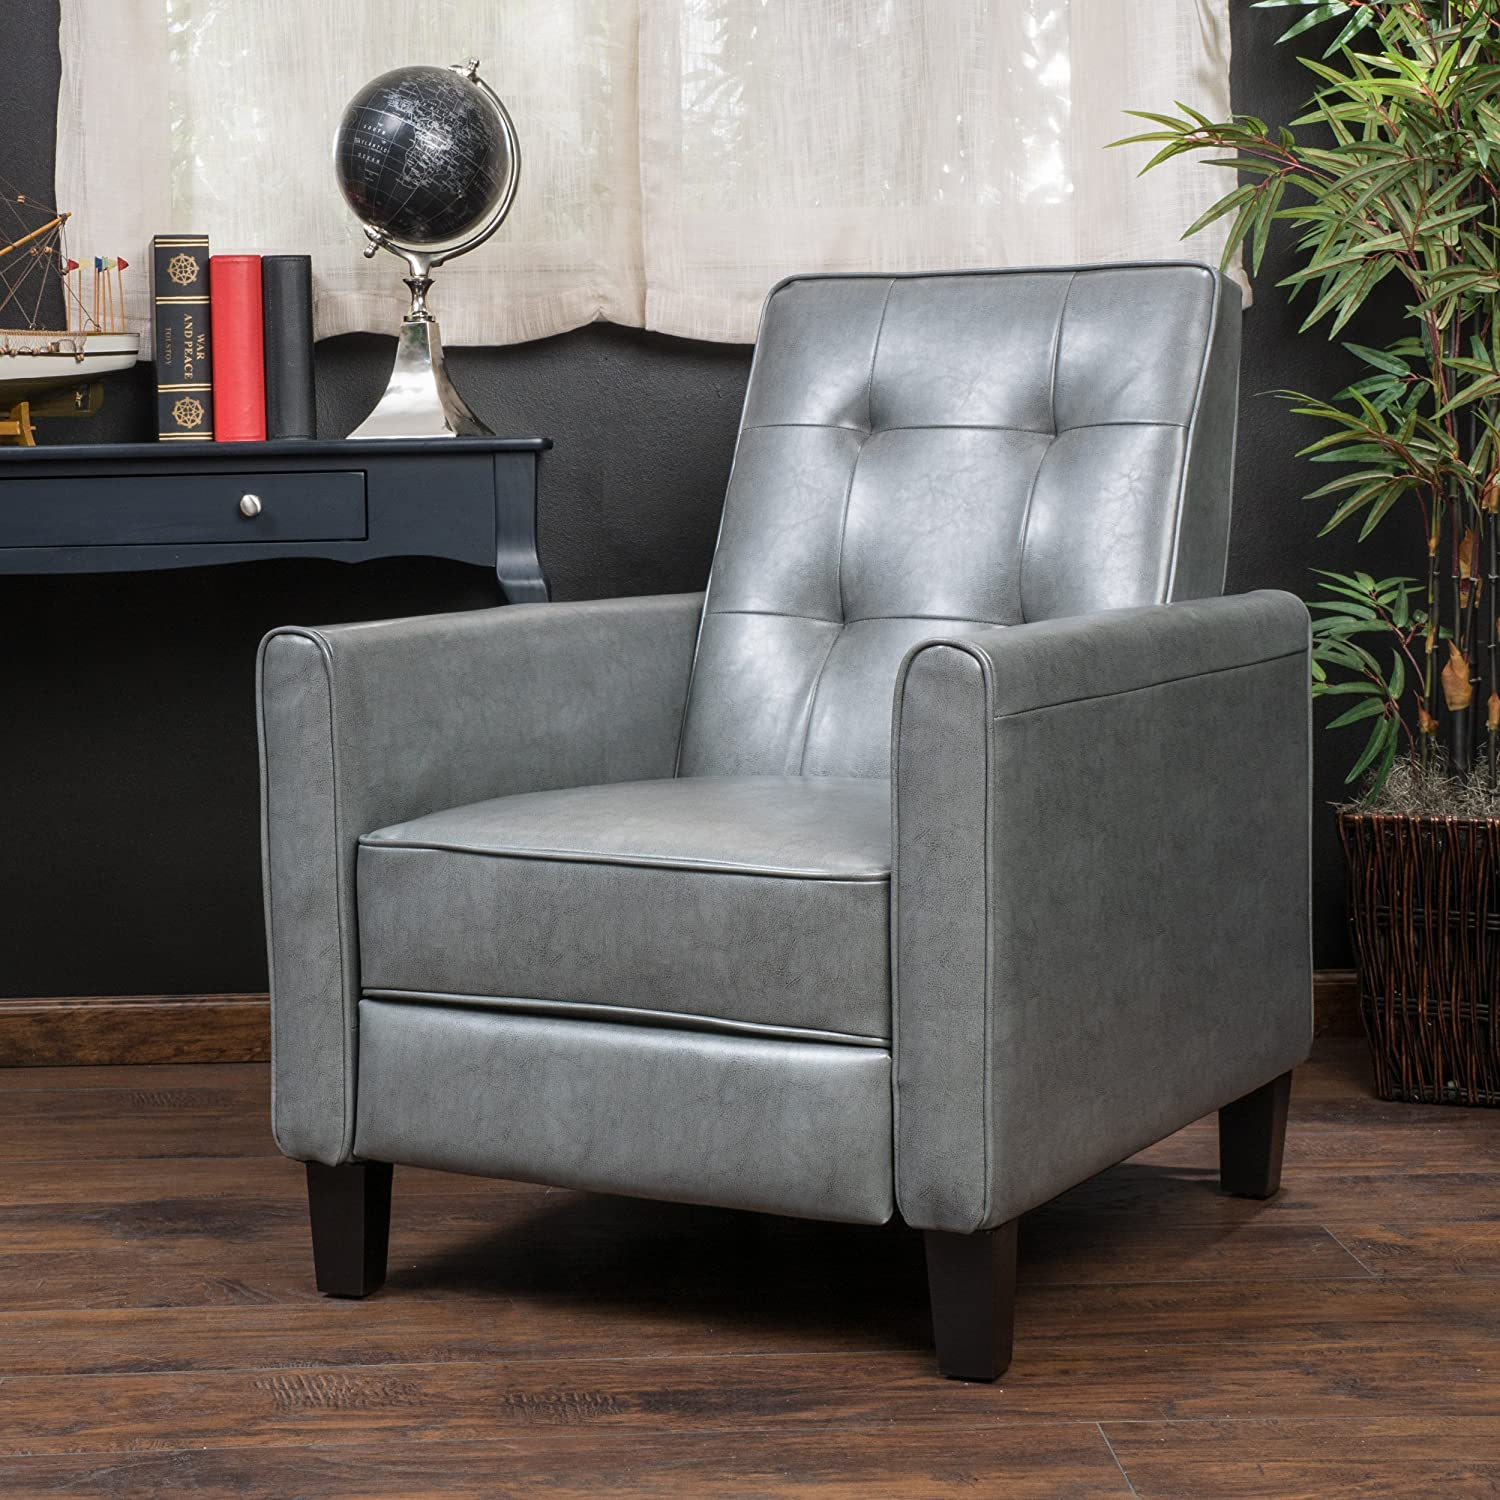 Amazon Denise Austin Home Elan Tufted Bonded Leather Recliner